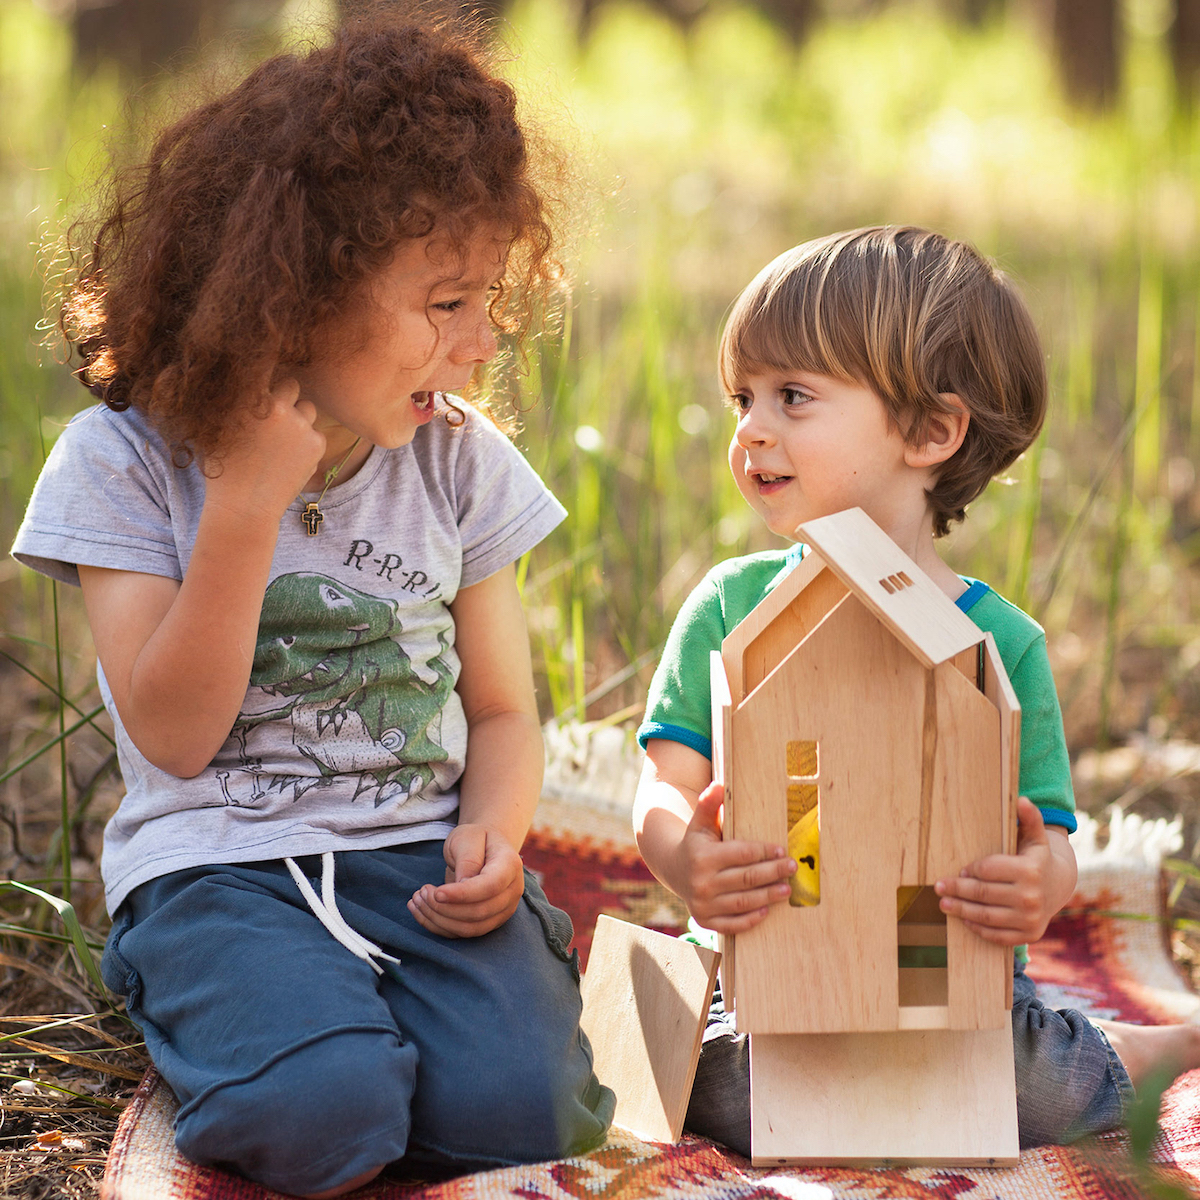 Two children playing with a wooden Babai dollhouse on a picnic blanket